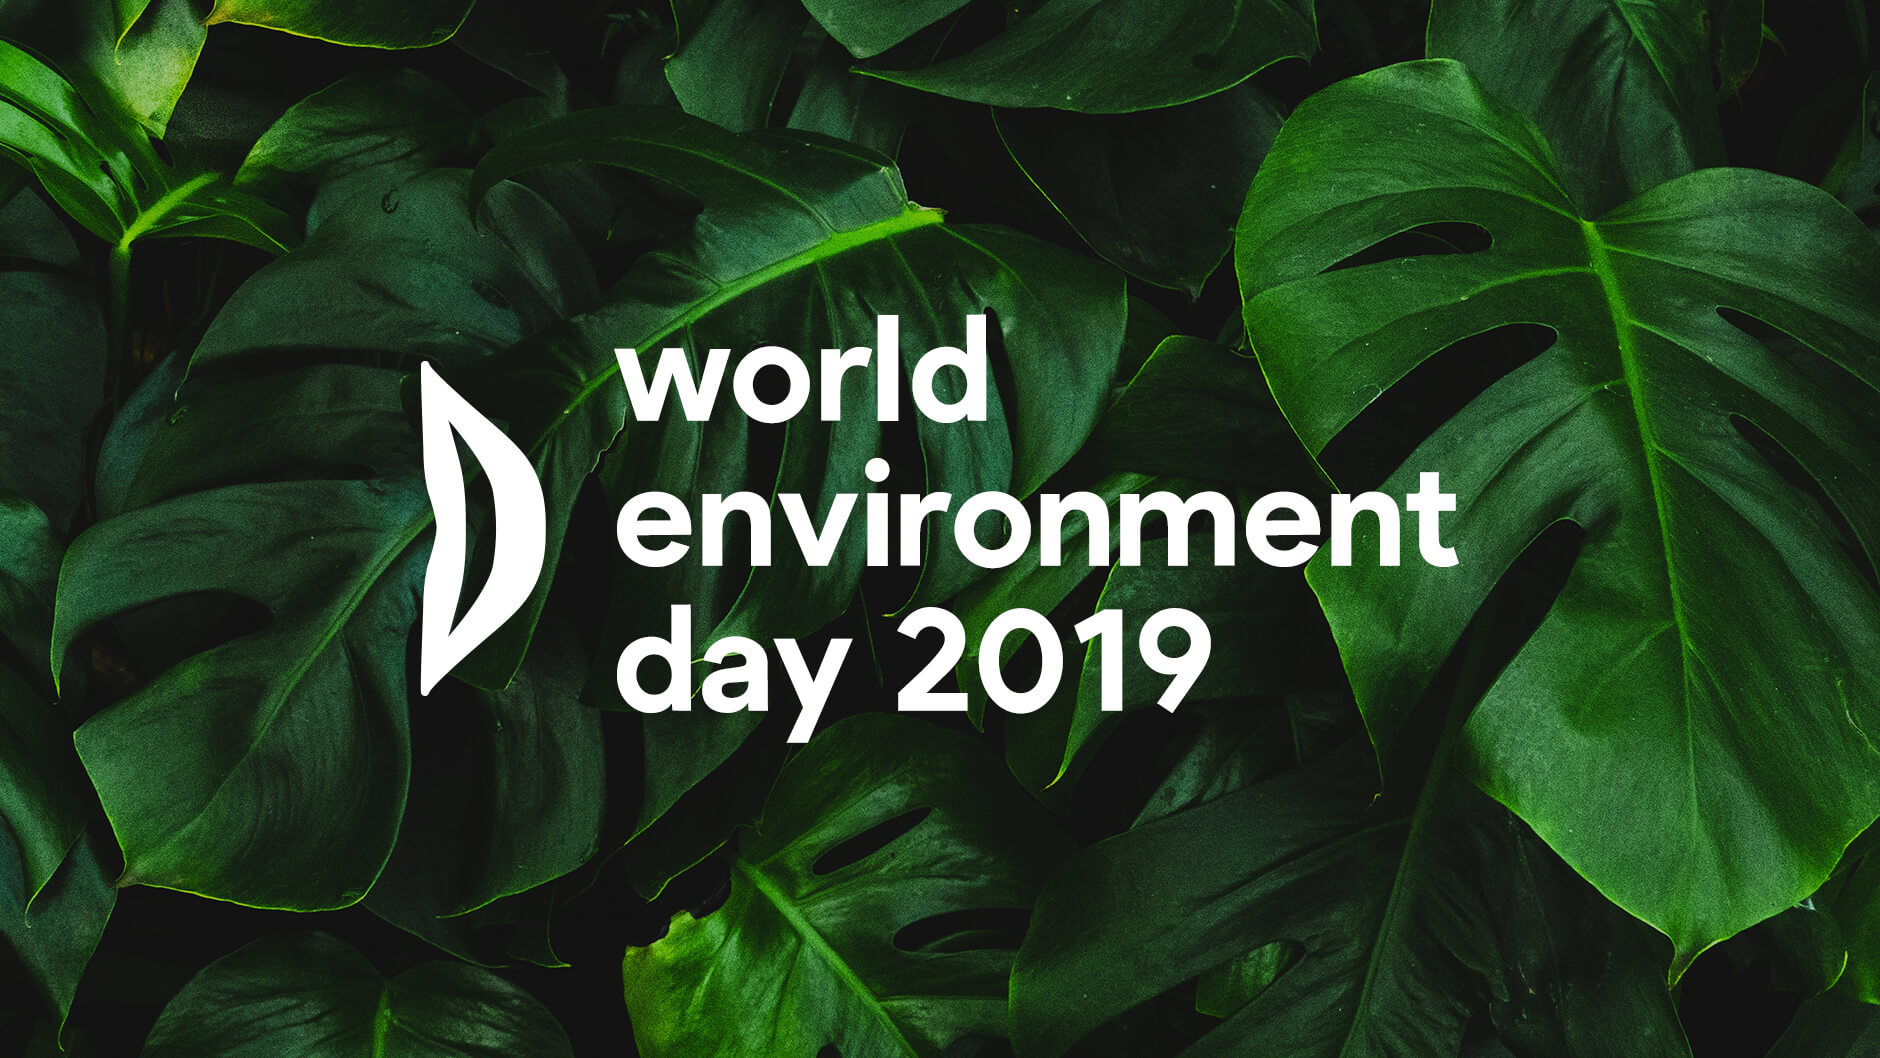 =World Environment Day